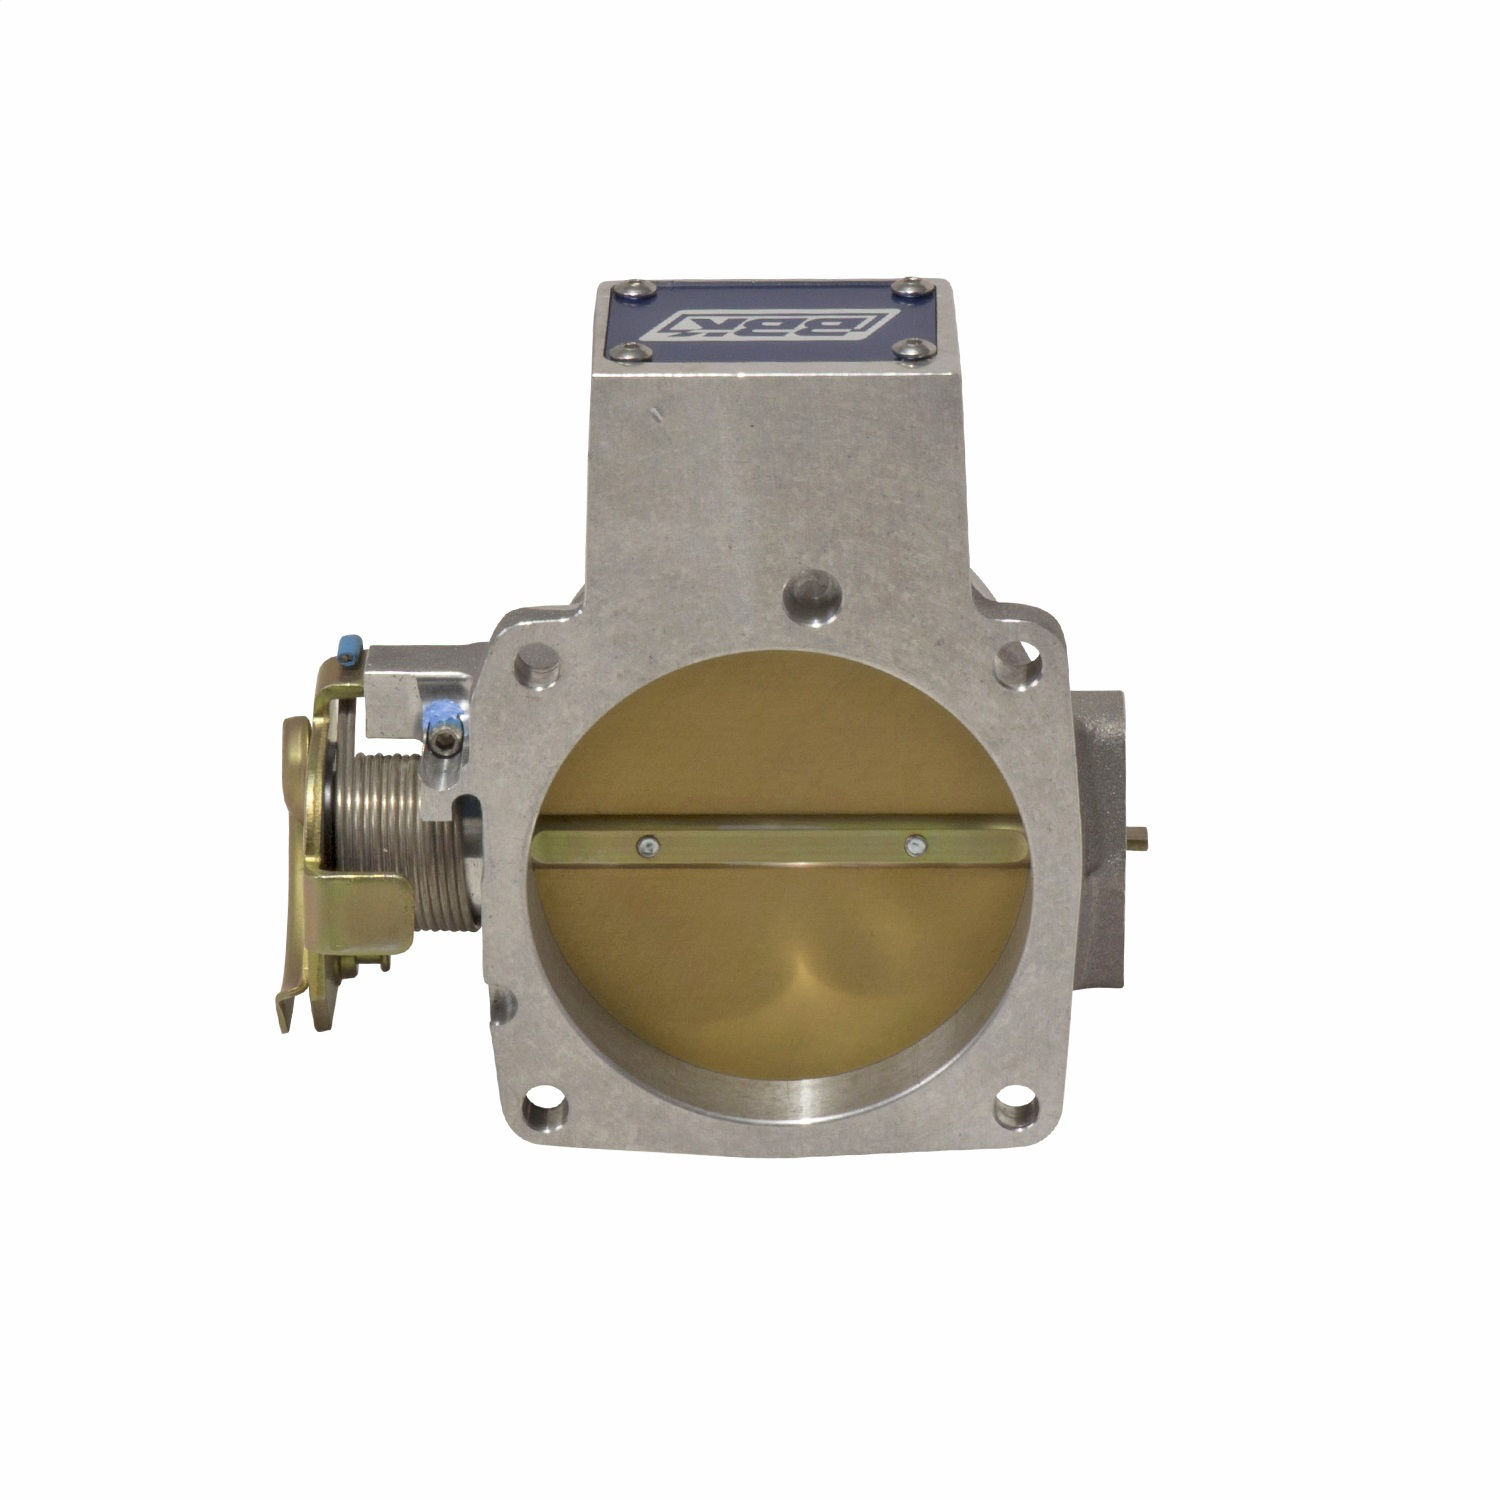 BBK Performance Parts 1791 Power-Plus Series Performance Throttle Body Size 80 mm Gaskets And Required Hardware Power-Plus Series Performance Throttle Body Cable Drive Hemi Swap Conversion Incl